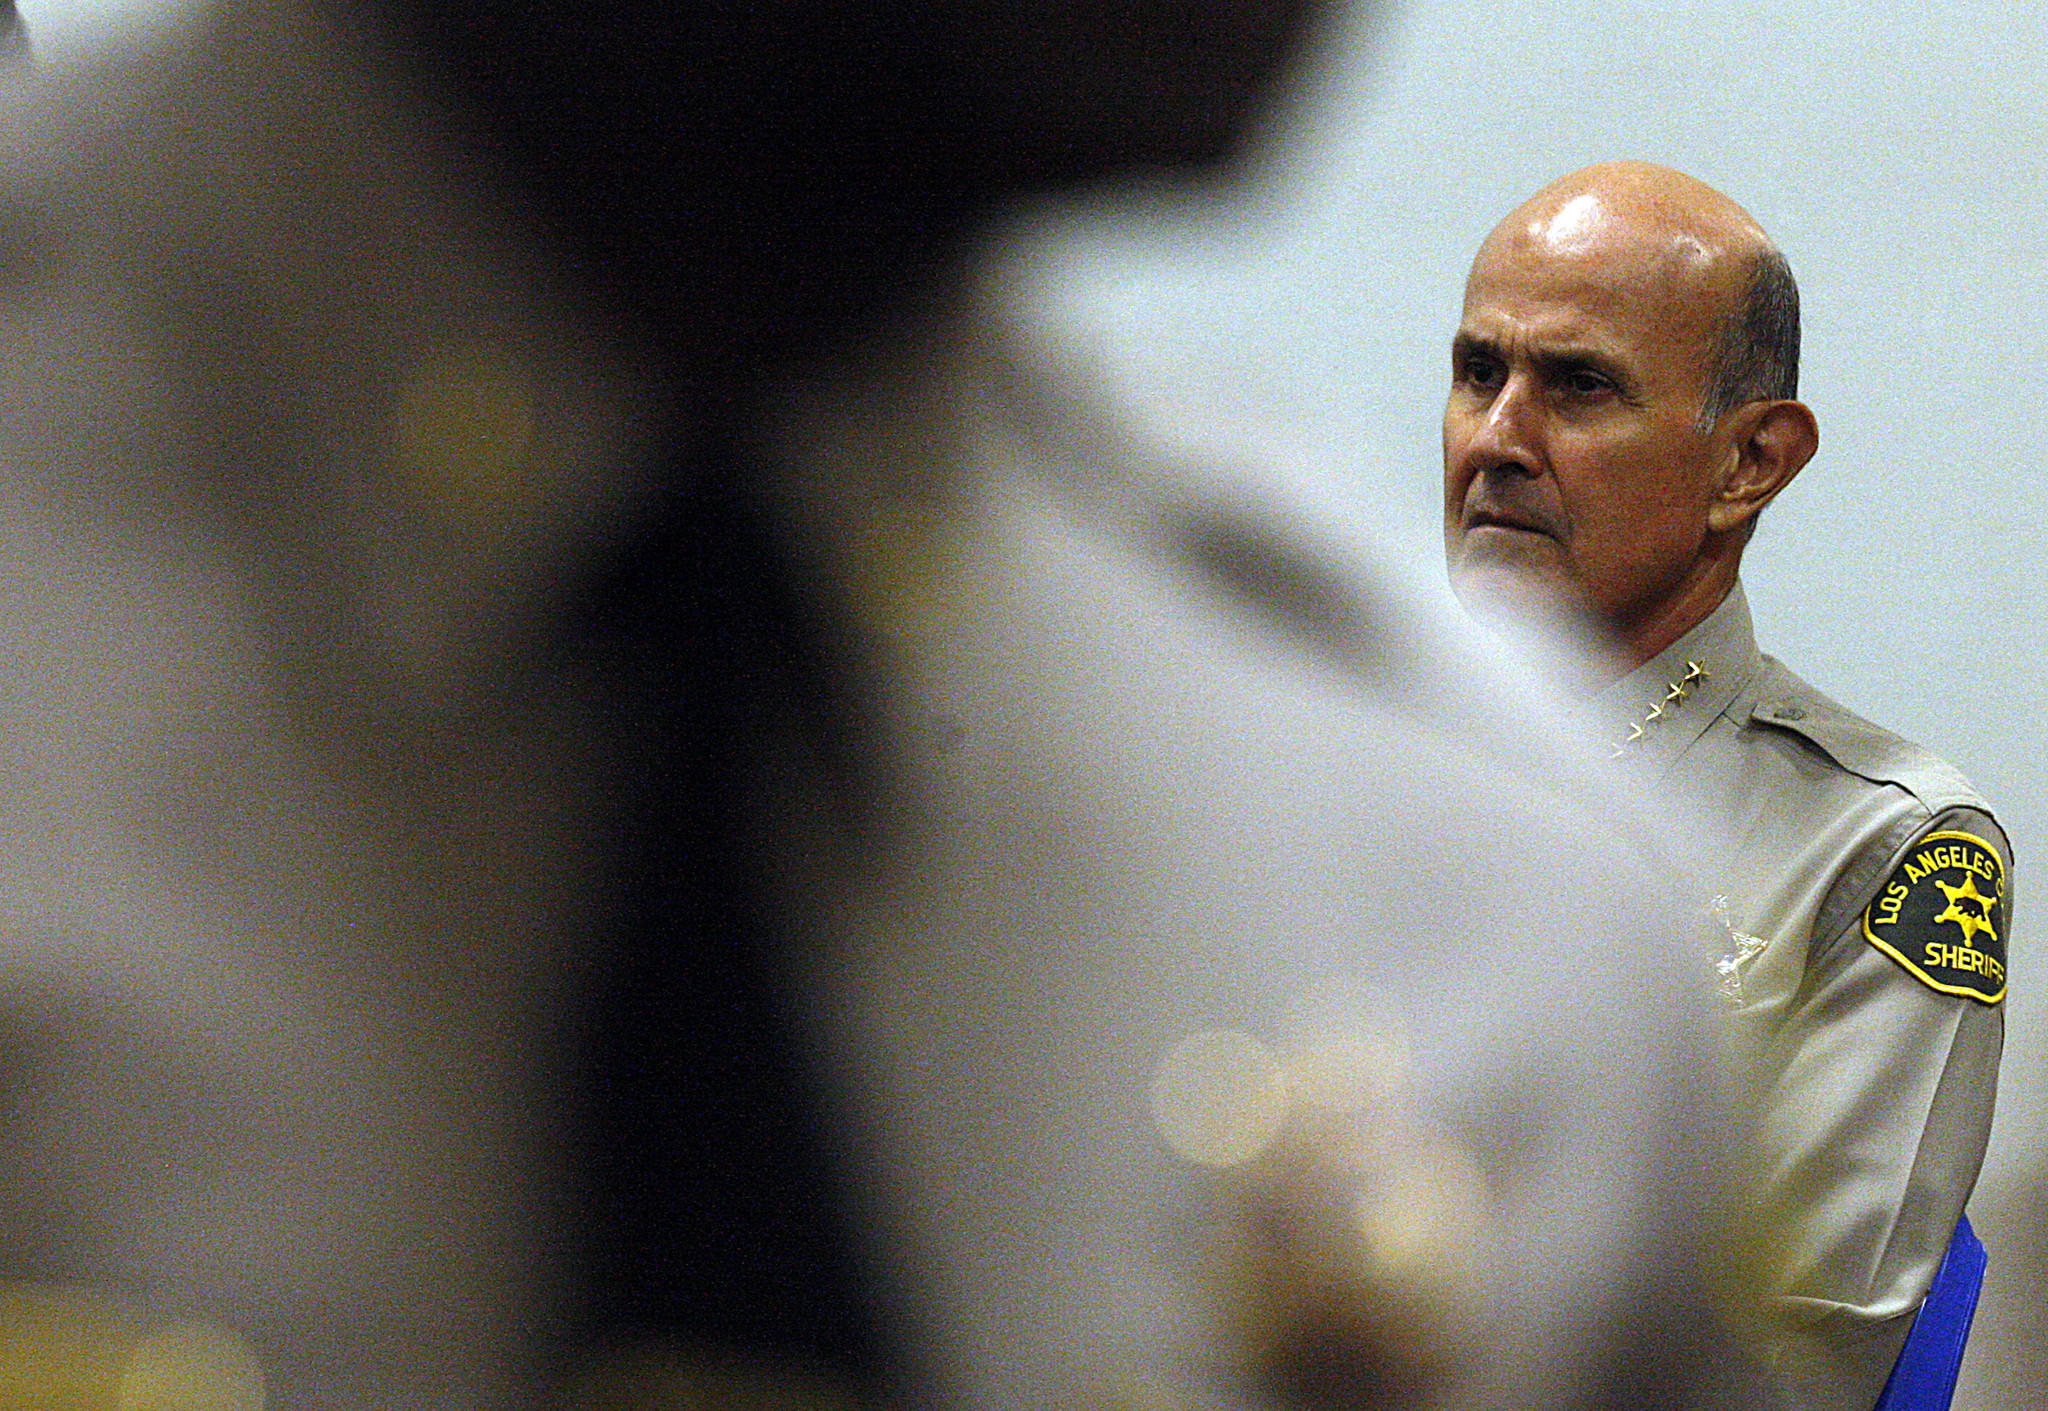 Sheriff Lee Baca did not know about his nephew's past brushes with the law, his spokesman said.